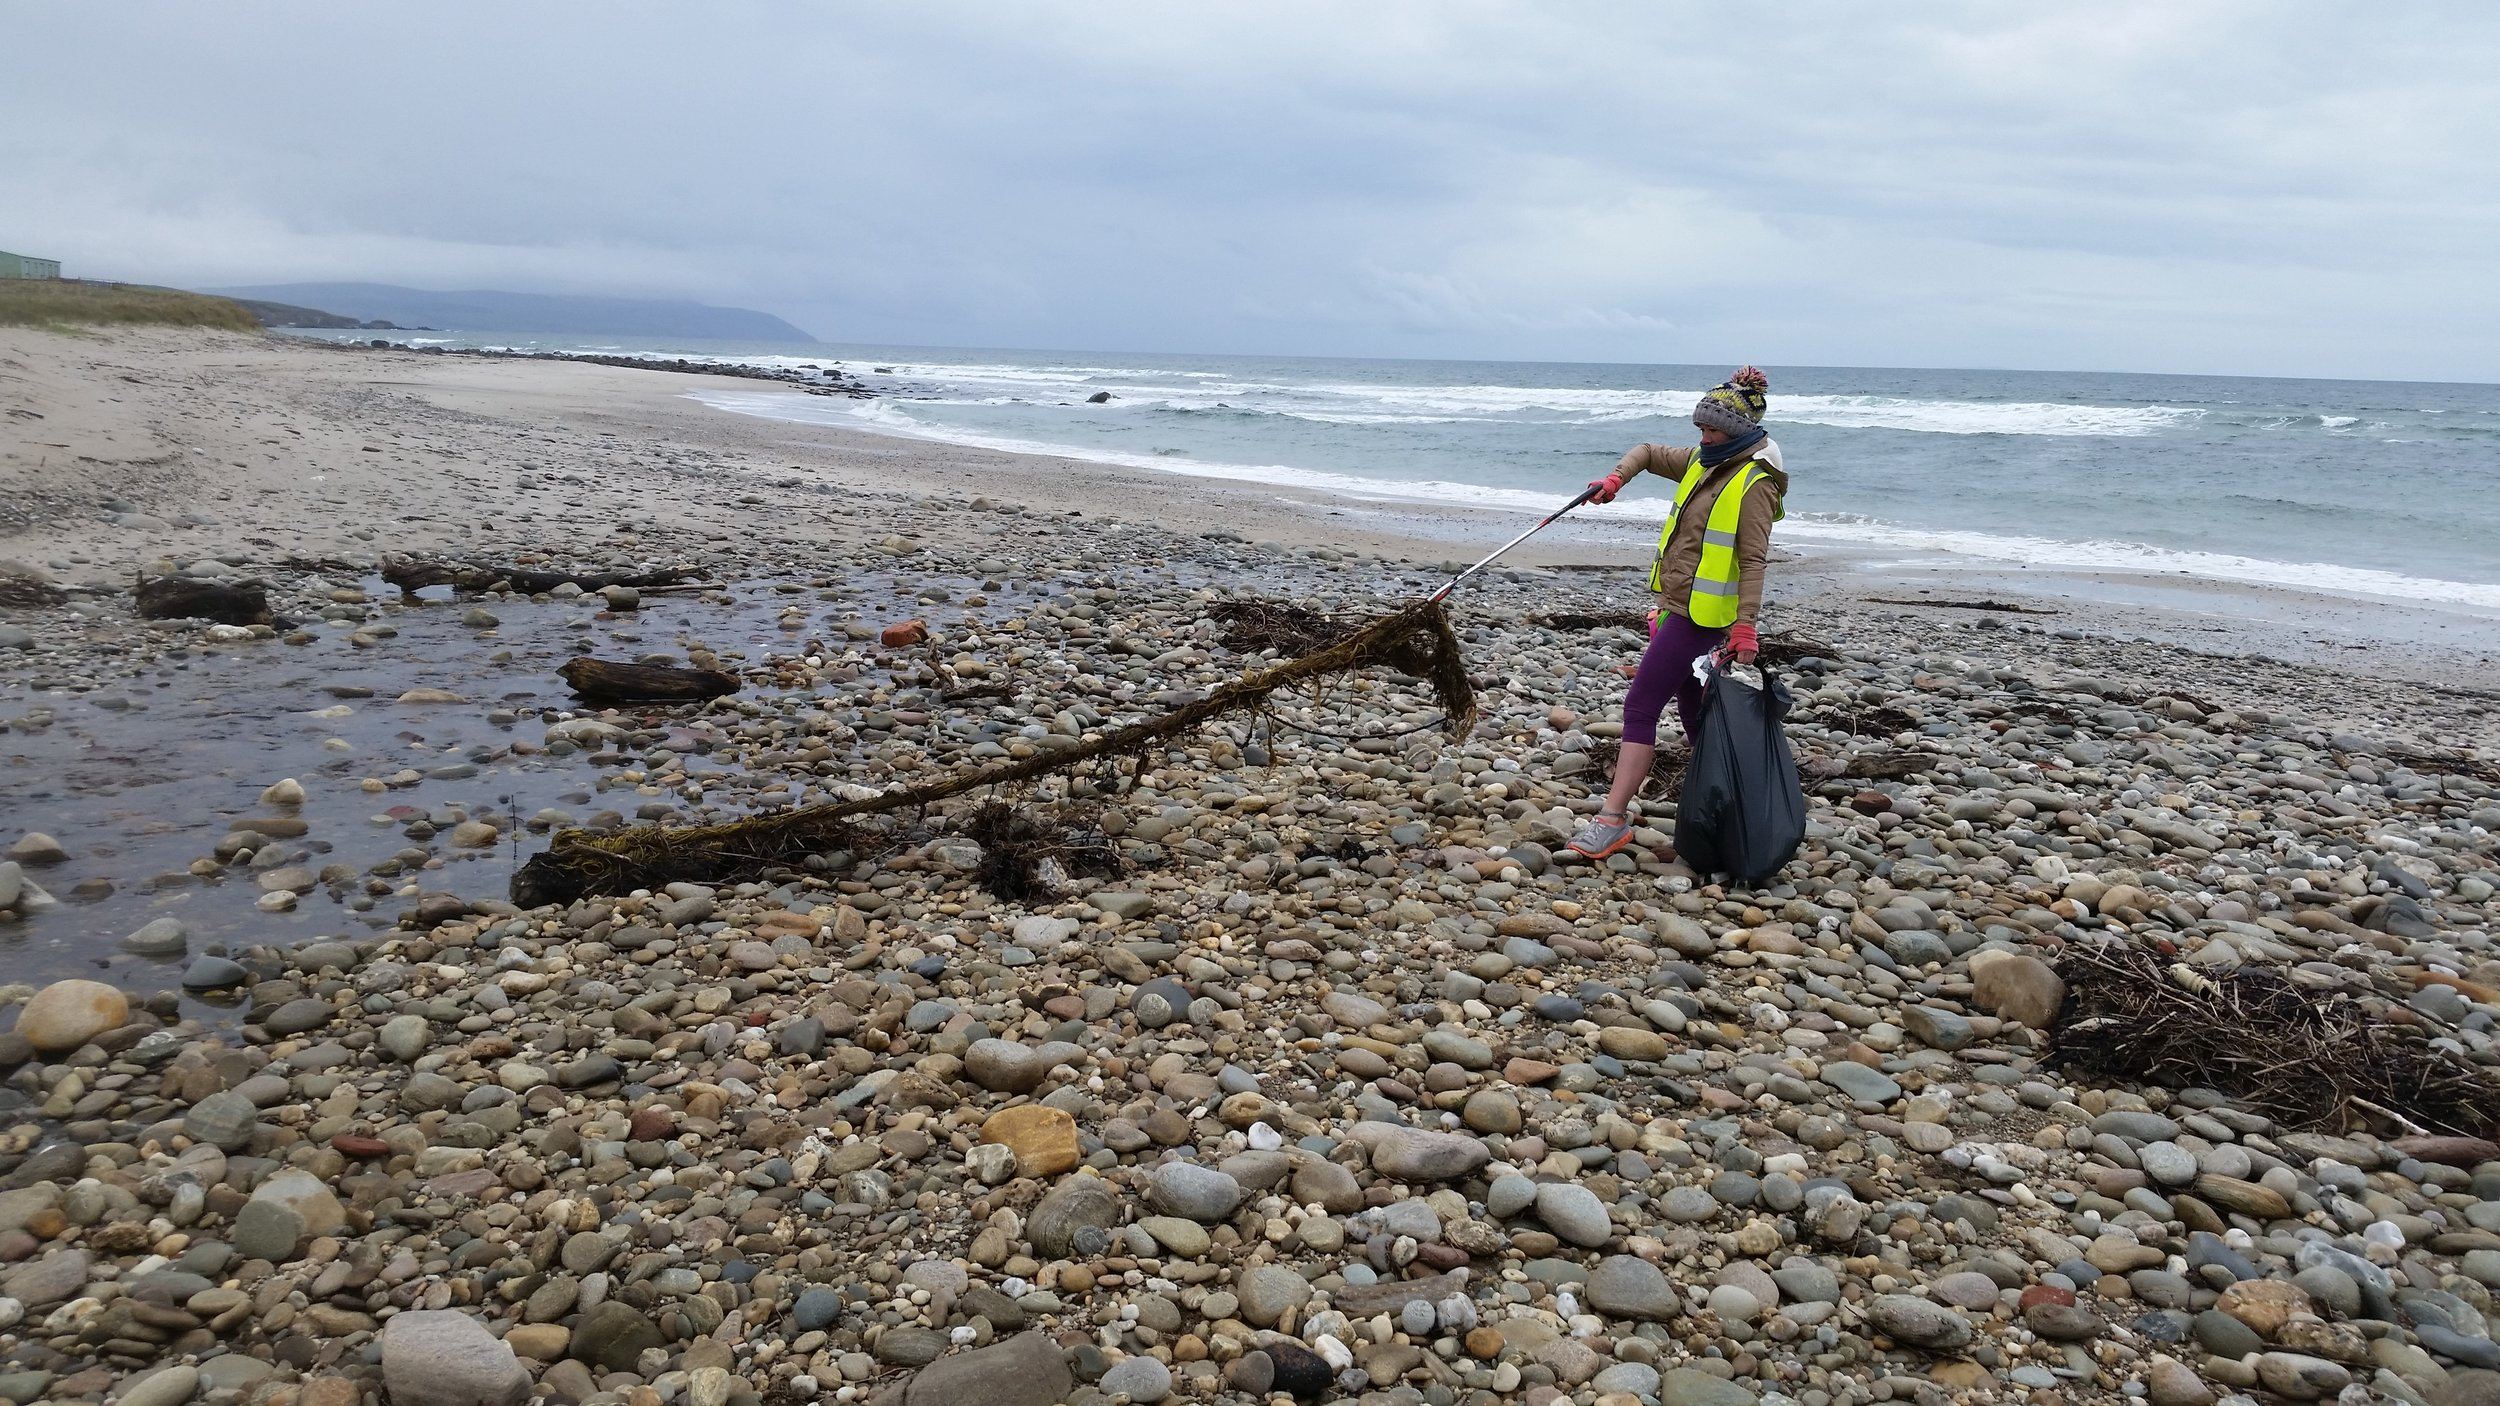 Giant piece of netting, both Ellie and Pete could not move together. Unfortunately we had to leave it on the beach.